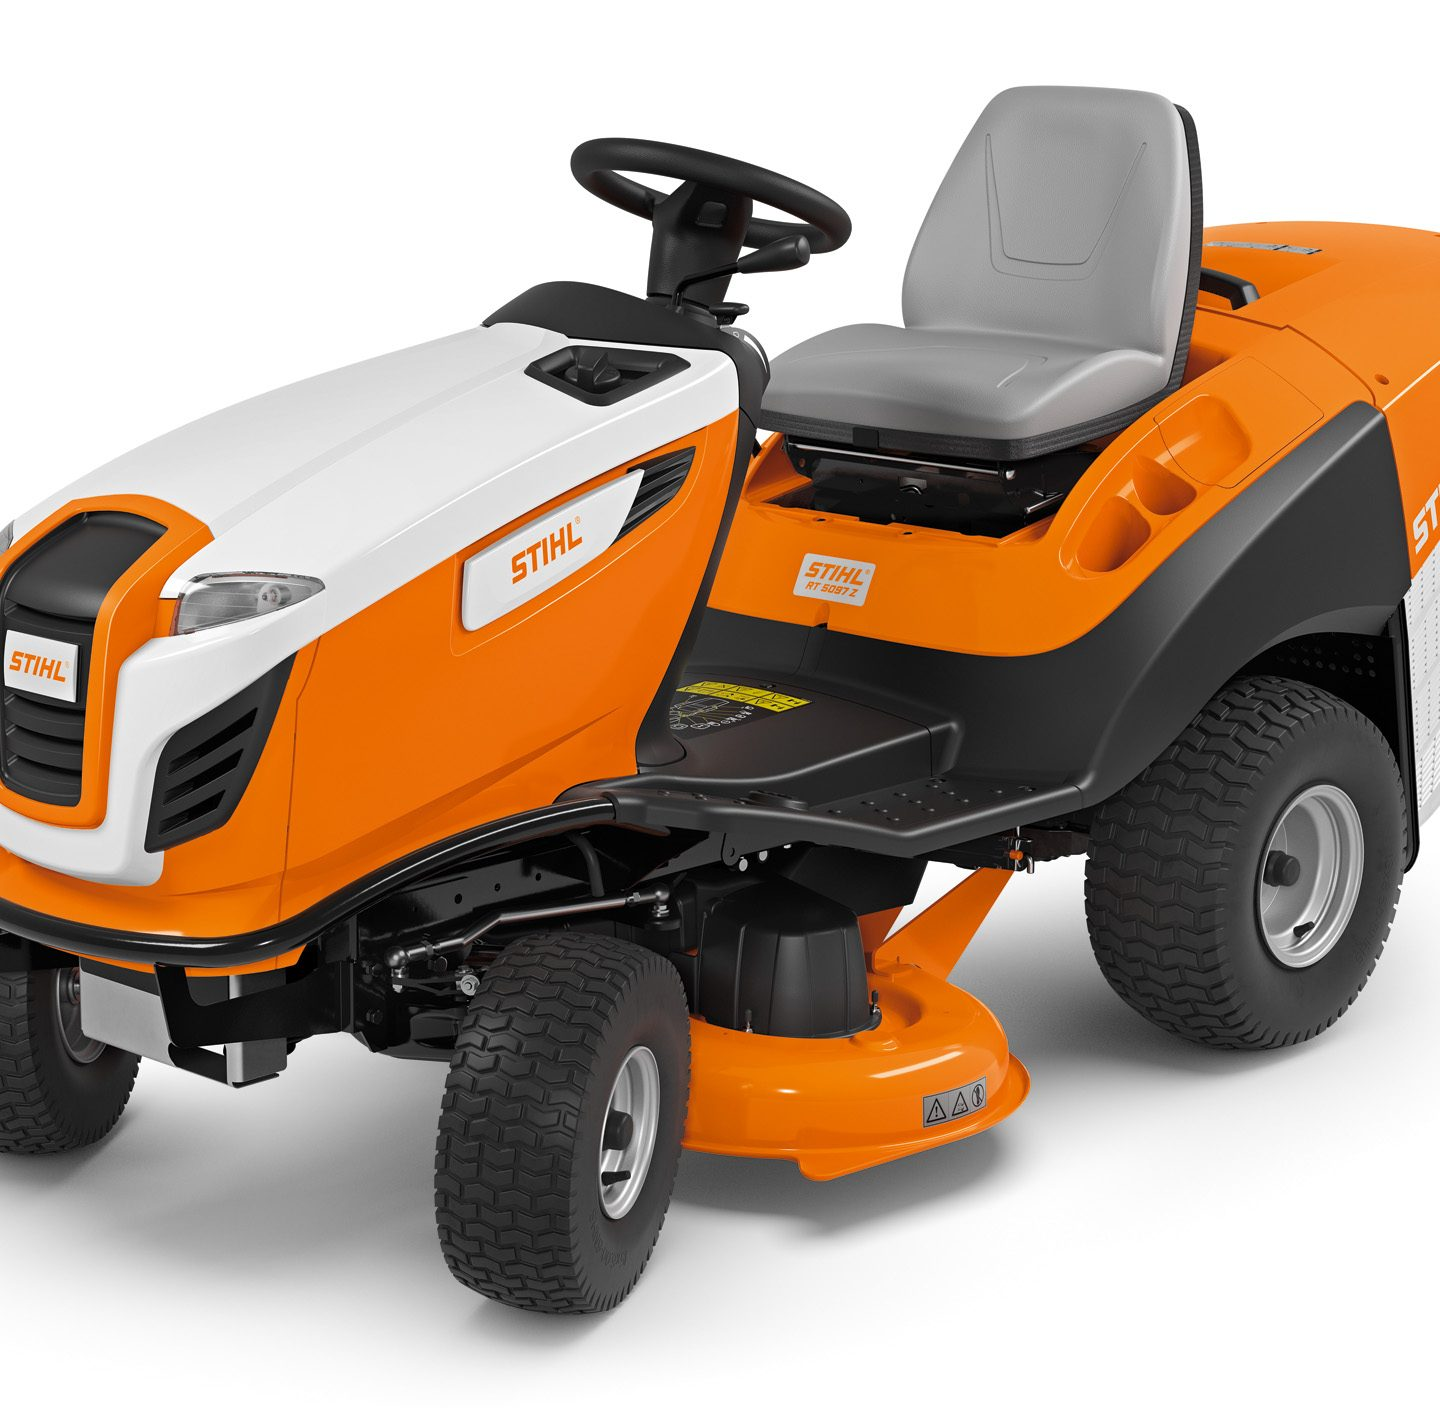 RT 5097 Z - HIGH PERFORMANCE LAWN TRACTOR WITH OUTSTANDING MOWING PERFORMANCE